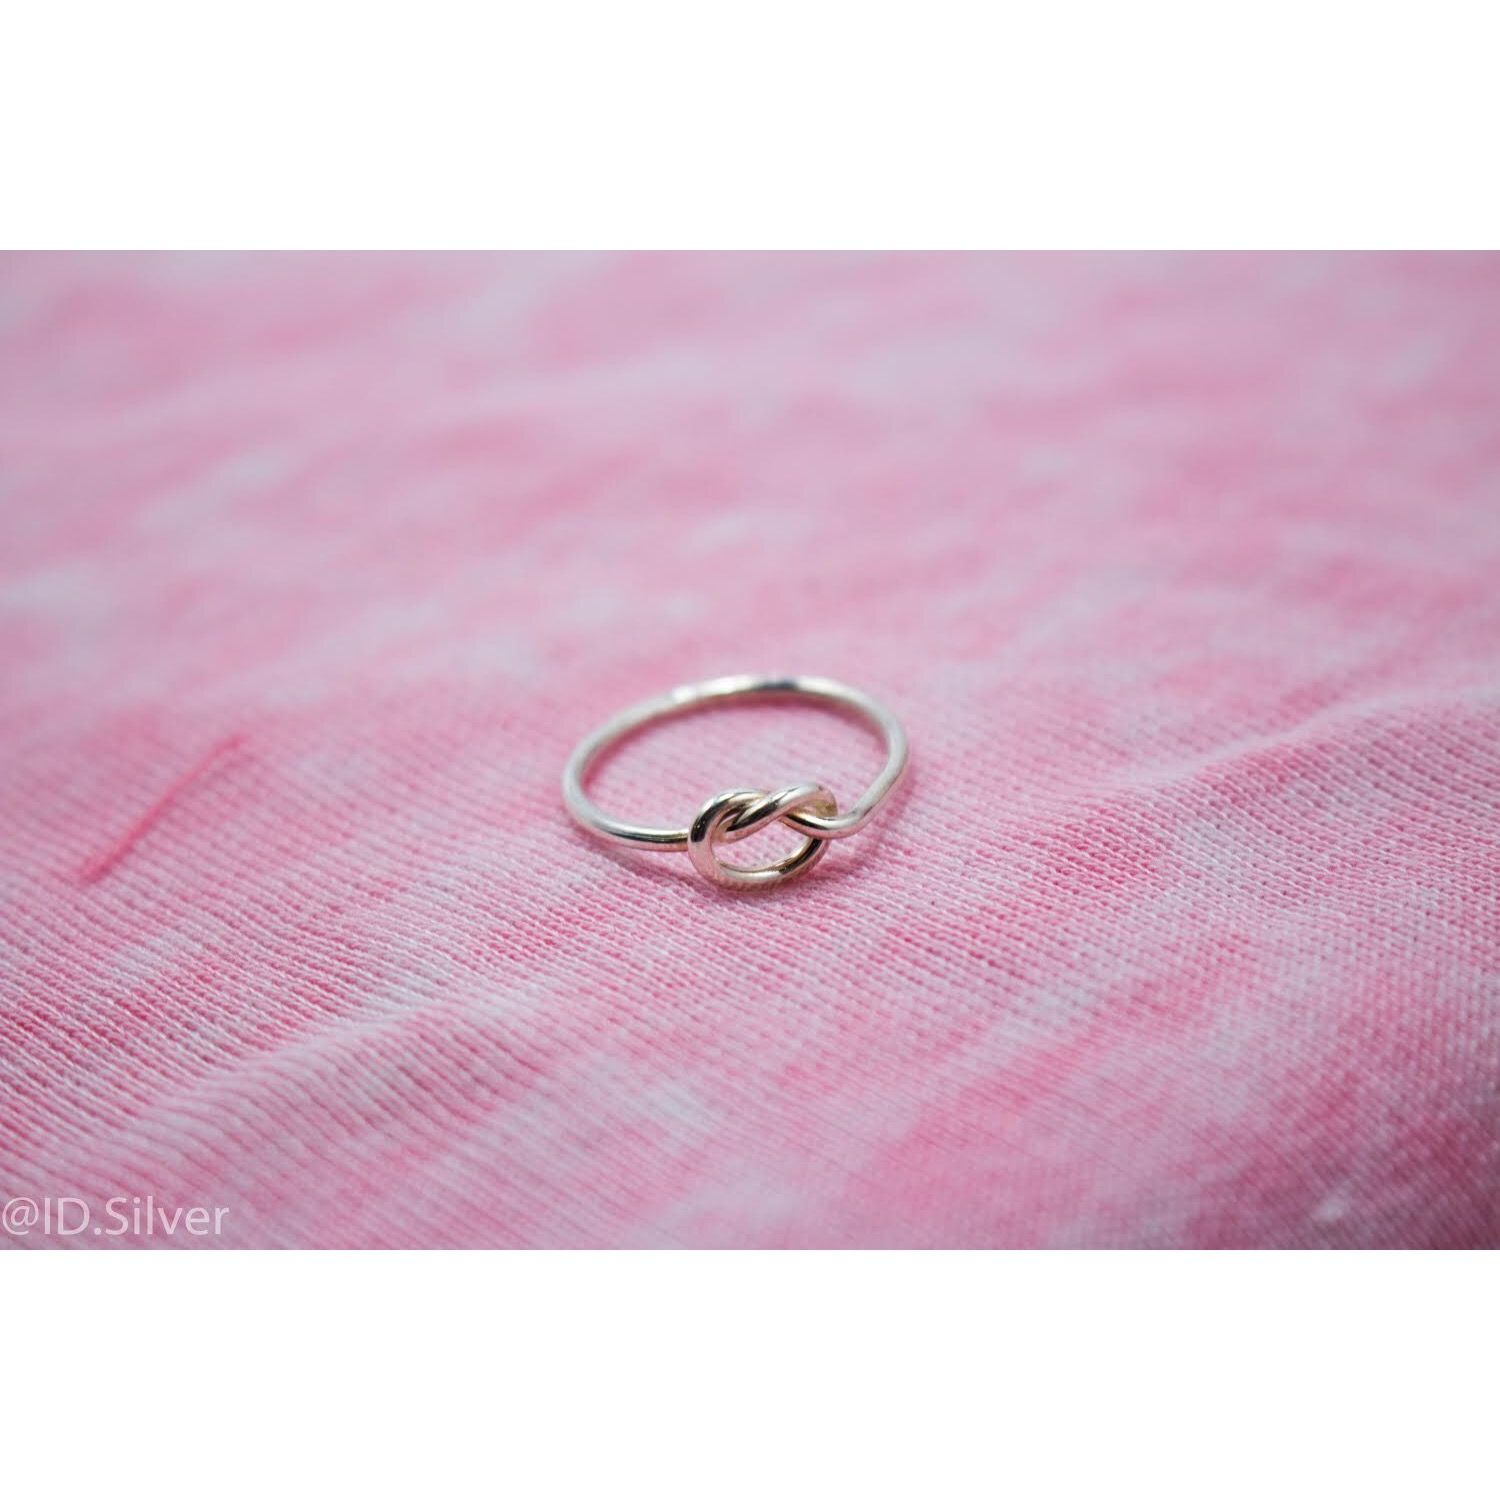 The Knot Ring | ID.Silver | Pinterest | Knot rings